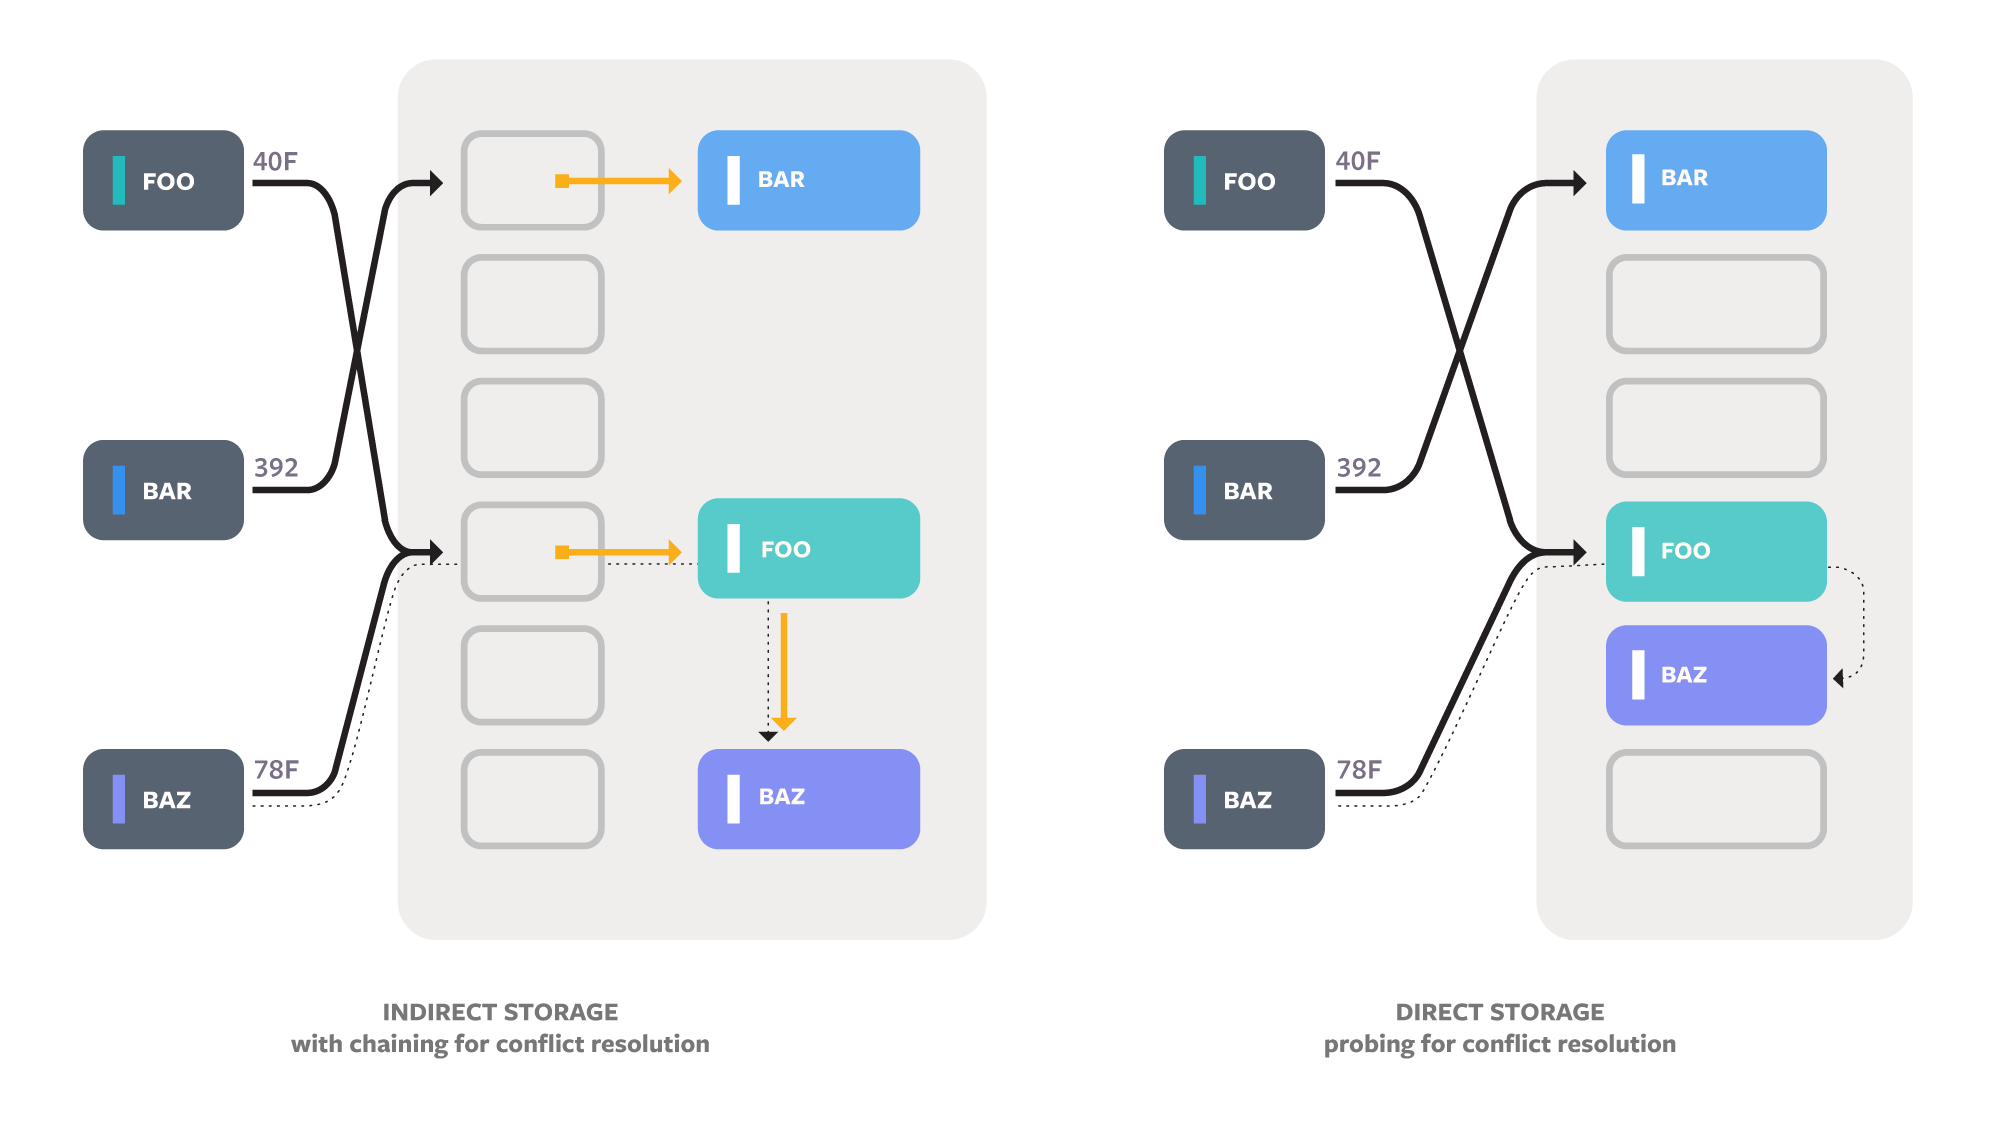 Algorithms generally use either chaining, which uses a secondary data structure such as a linked list to store all the keys for a slot, or probing, which stores keys directly in the main array and then keeps checking new slots if there is a collision.